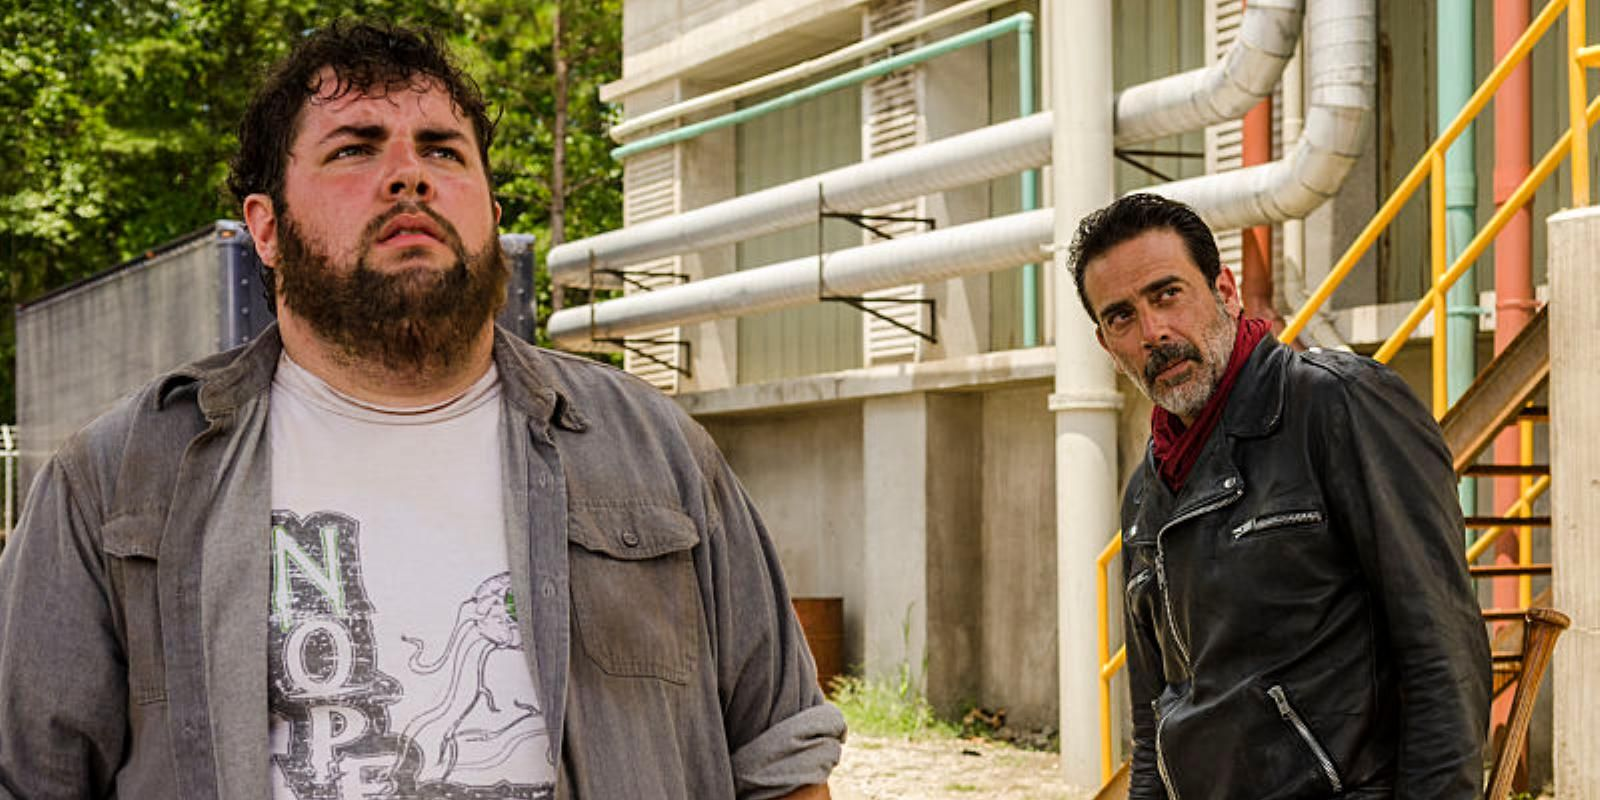 Fat Joey and Negan in The Walking Dead